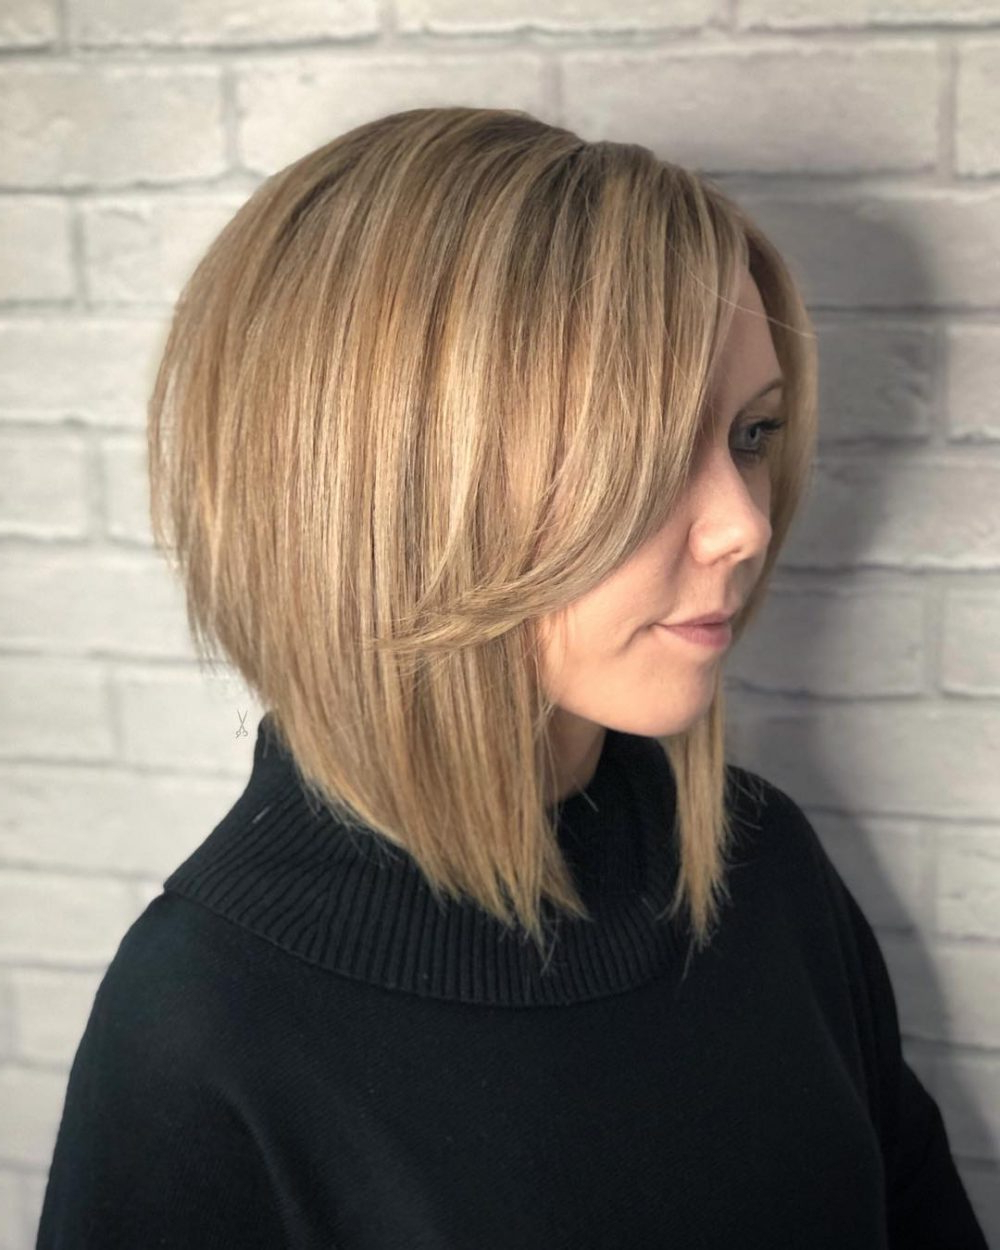 34 Greatest Short Haircuts And Hairstyles For Thick Hair For 2018 Within Short Haircuts Bobs Thick Hair (View 7 of 25)